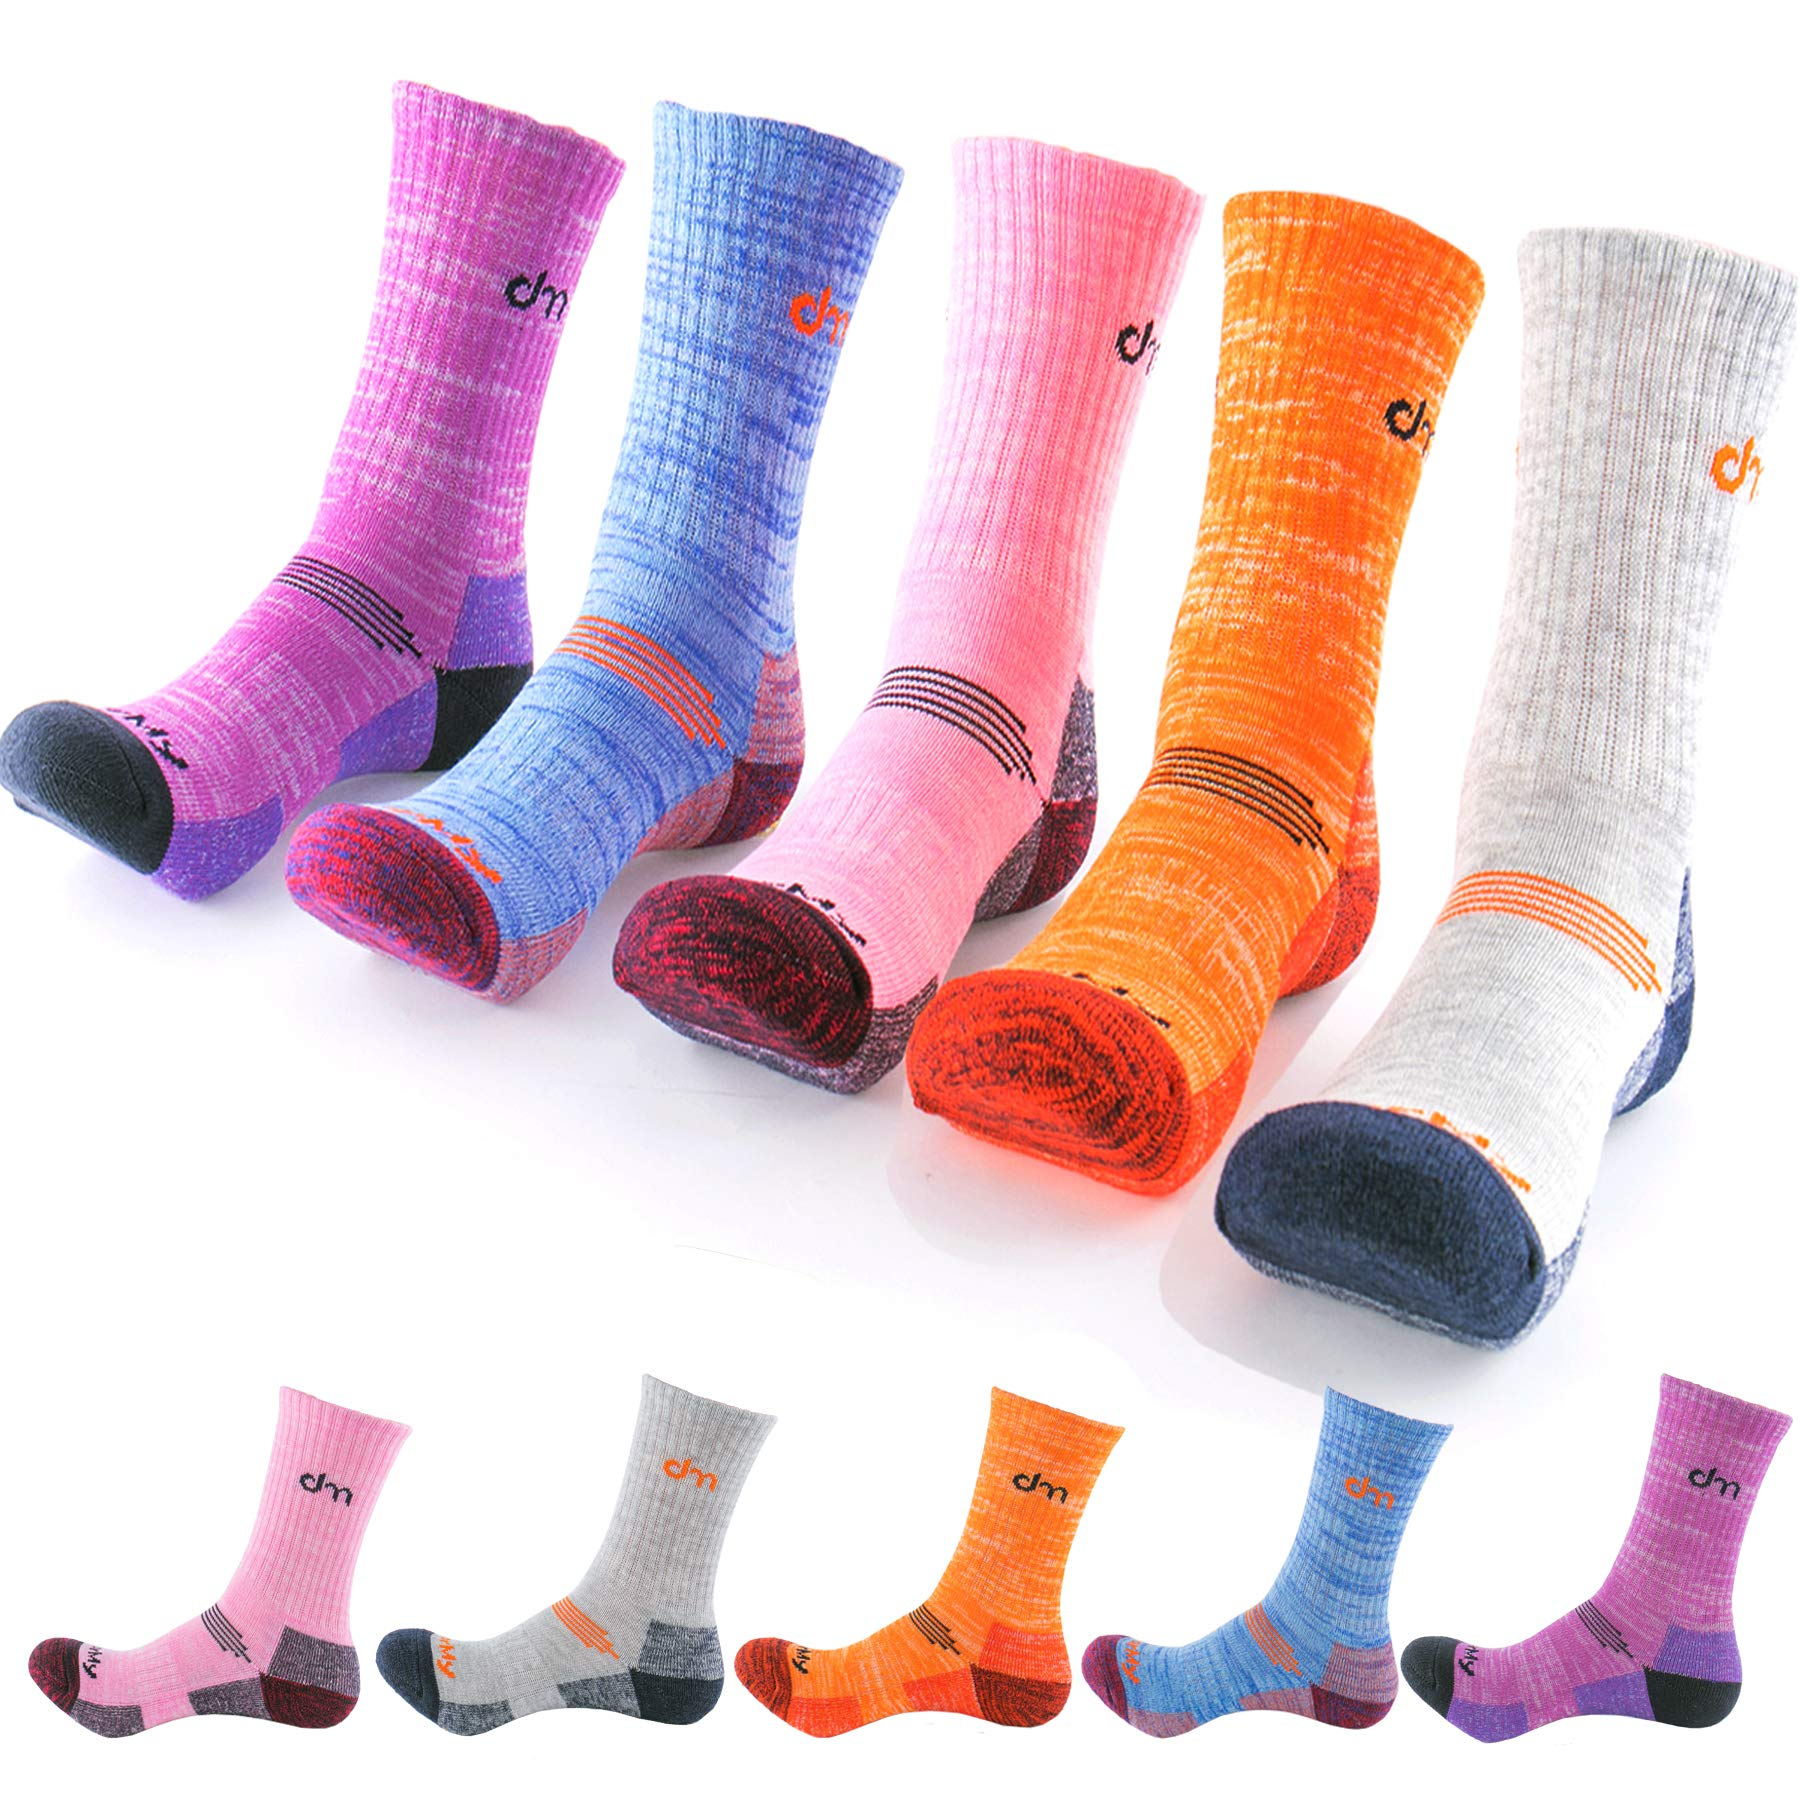 DearMy 5Pack of Women's Multi Performance Cushion Outdoor Hiking Crew Socks | Moisture Wicking | Gifts for Women | Year Round (Medium (Shoe size 8-10 US), Orange/Grey/Purple/Blue/Pink - 5pack) by DEARMY